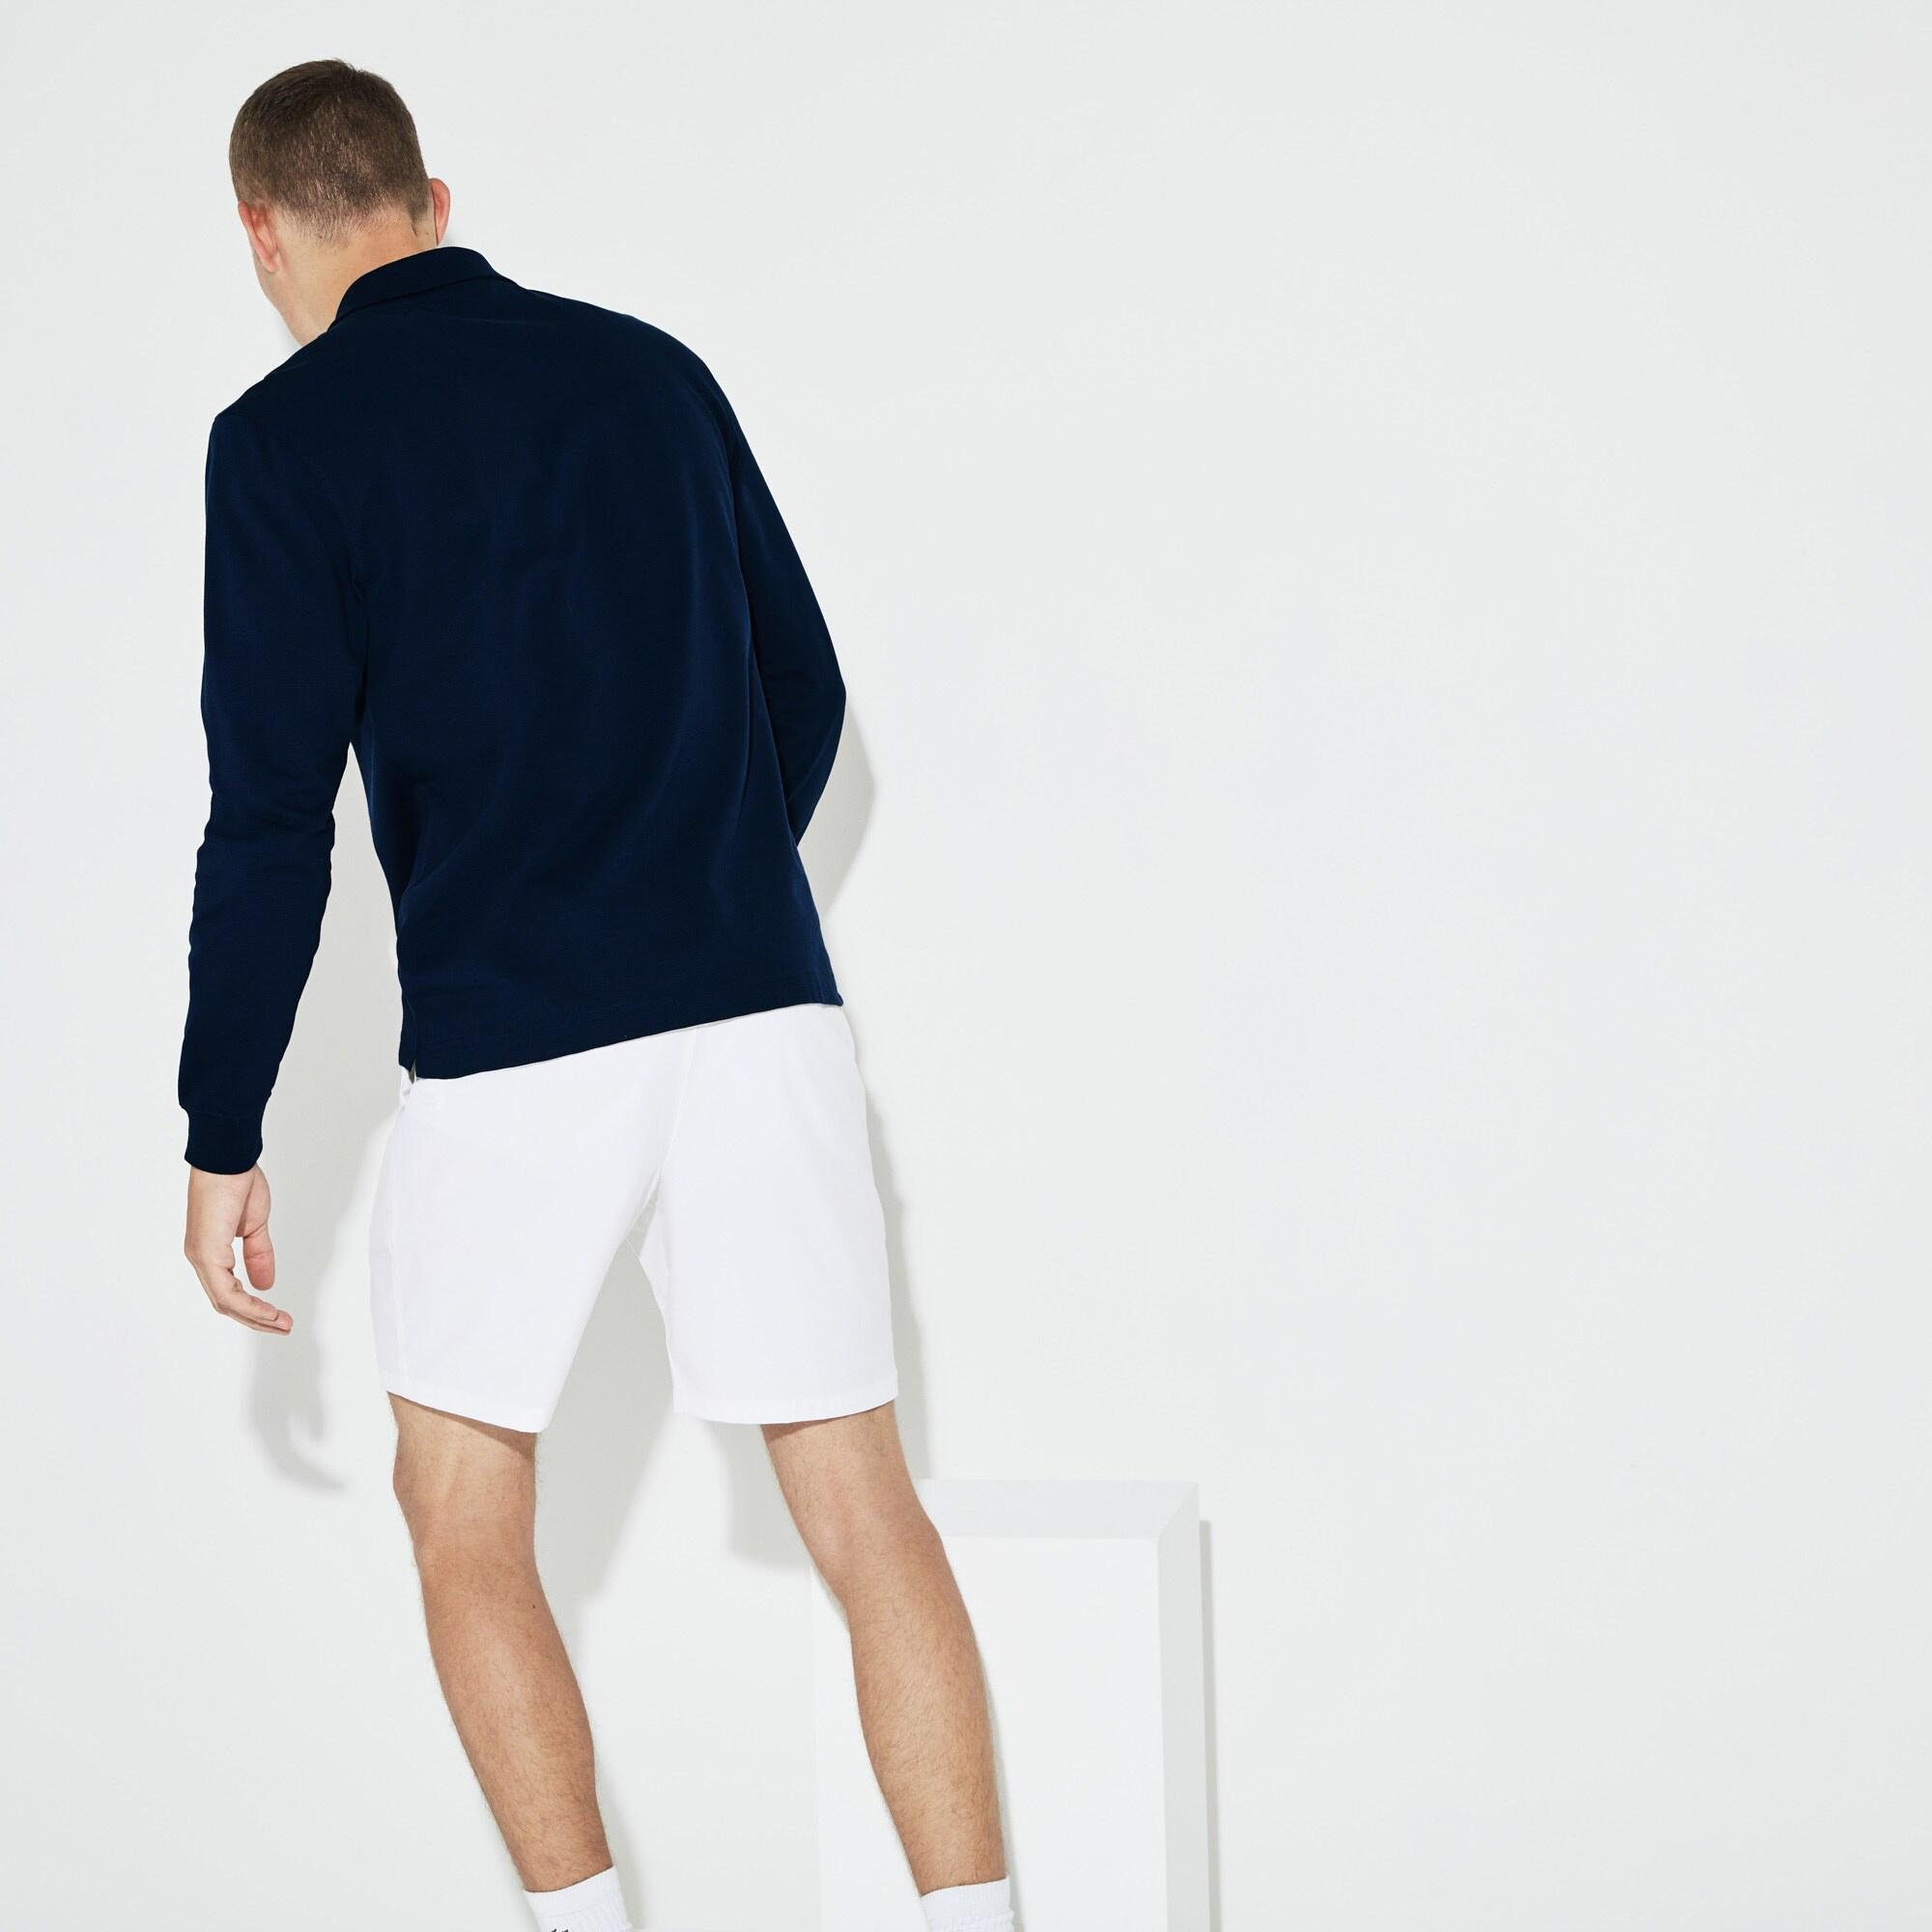 Lacoste Sport Men's Ultra-Light Cotton Tennis Polo